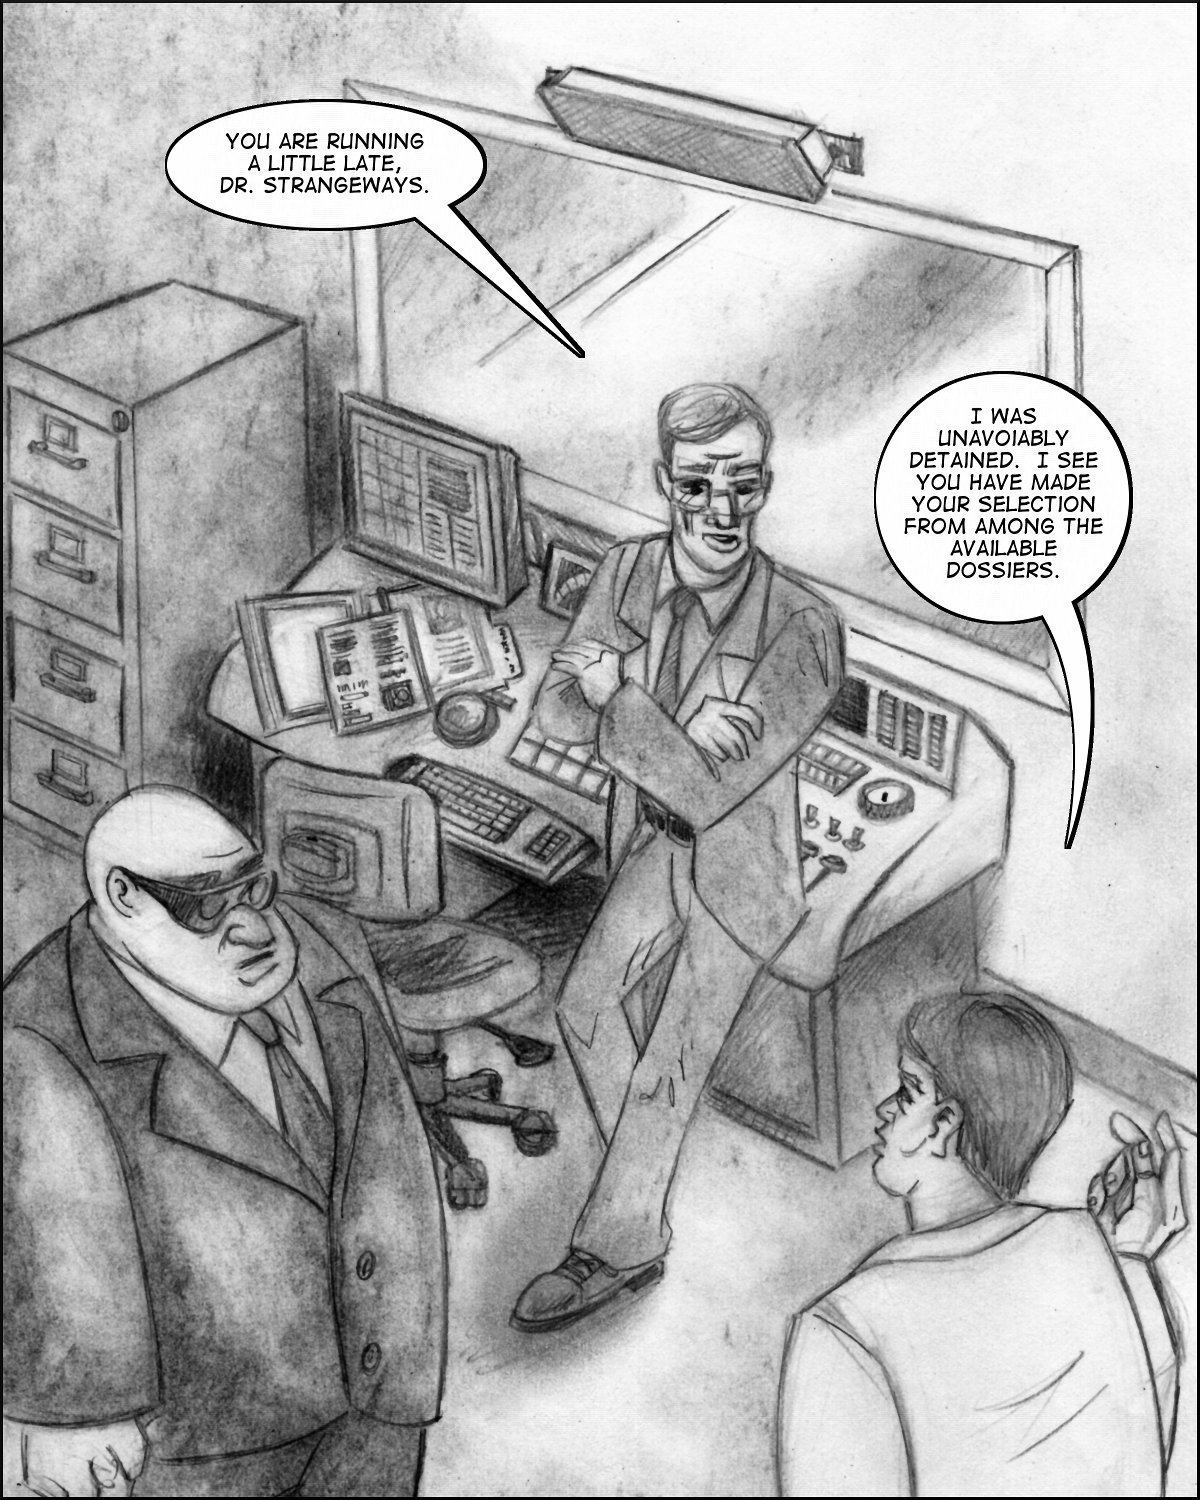 Strangeways meets with Ulrich and the Director in a basement lab.